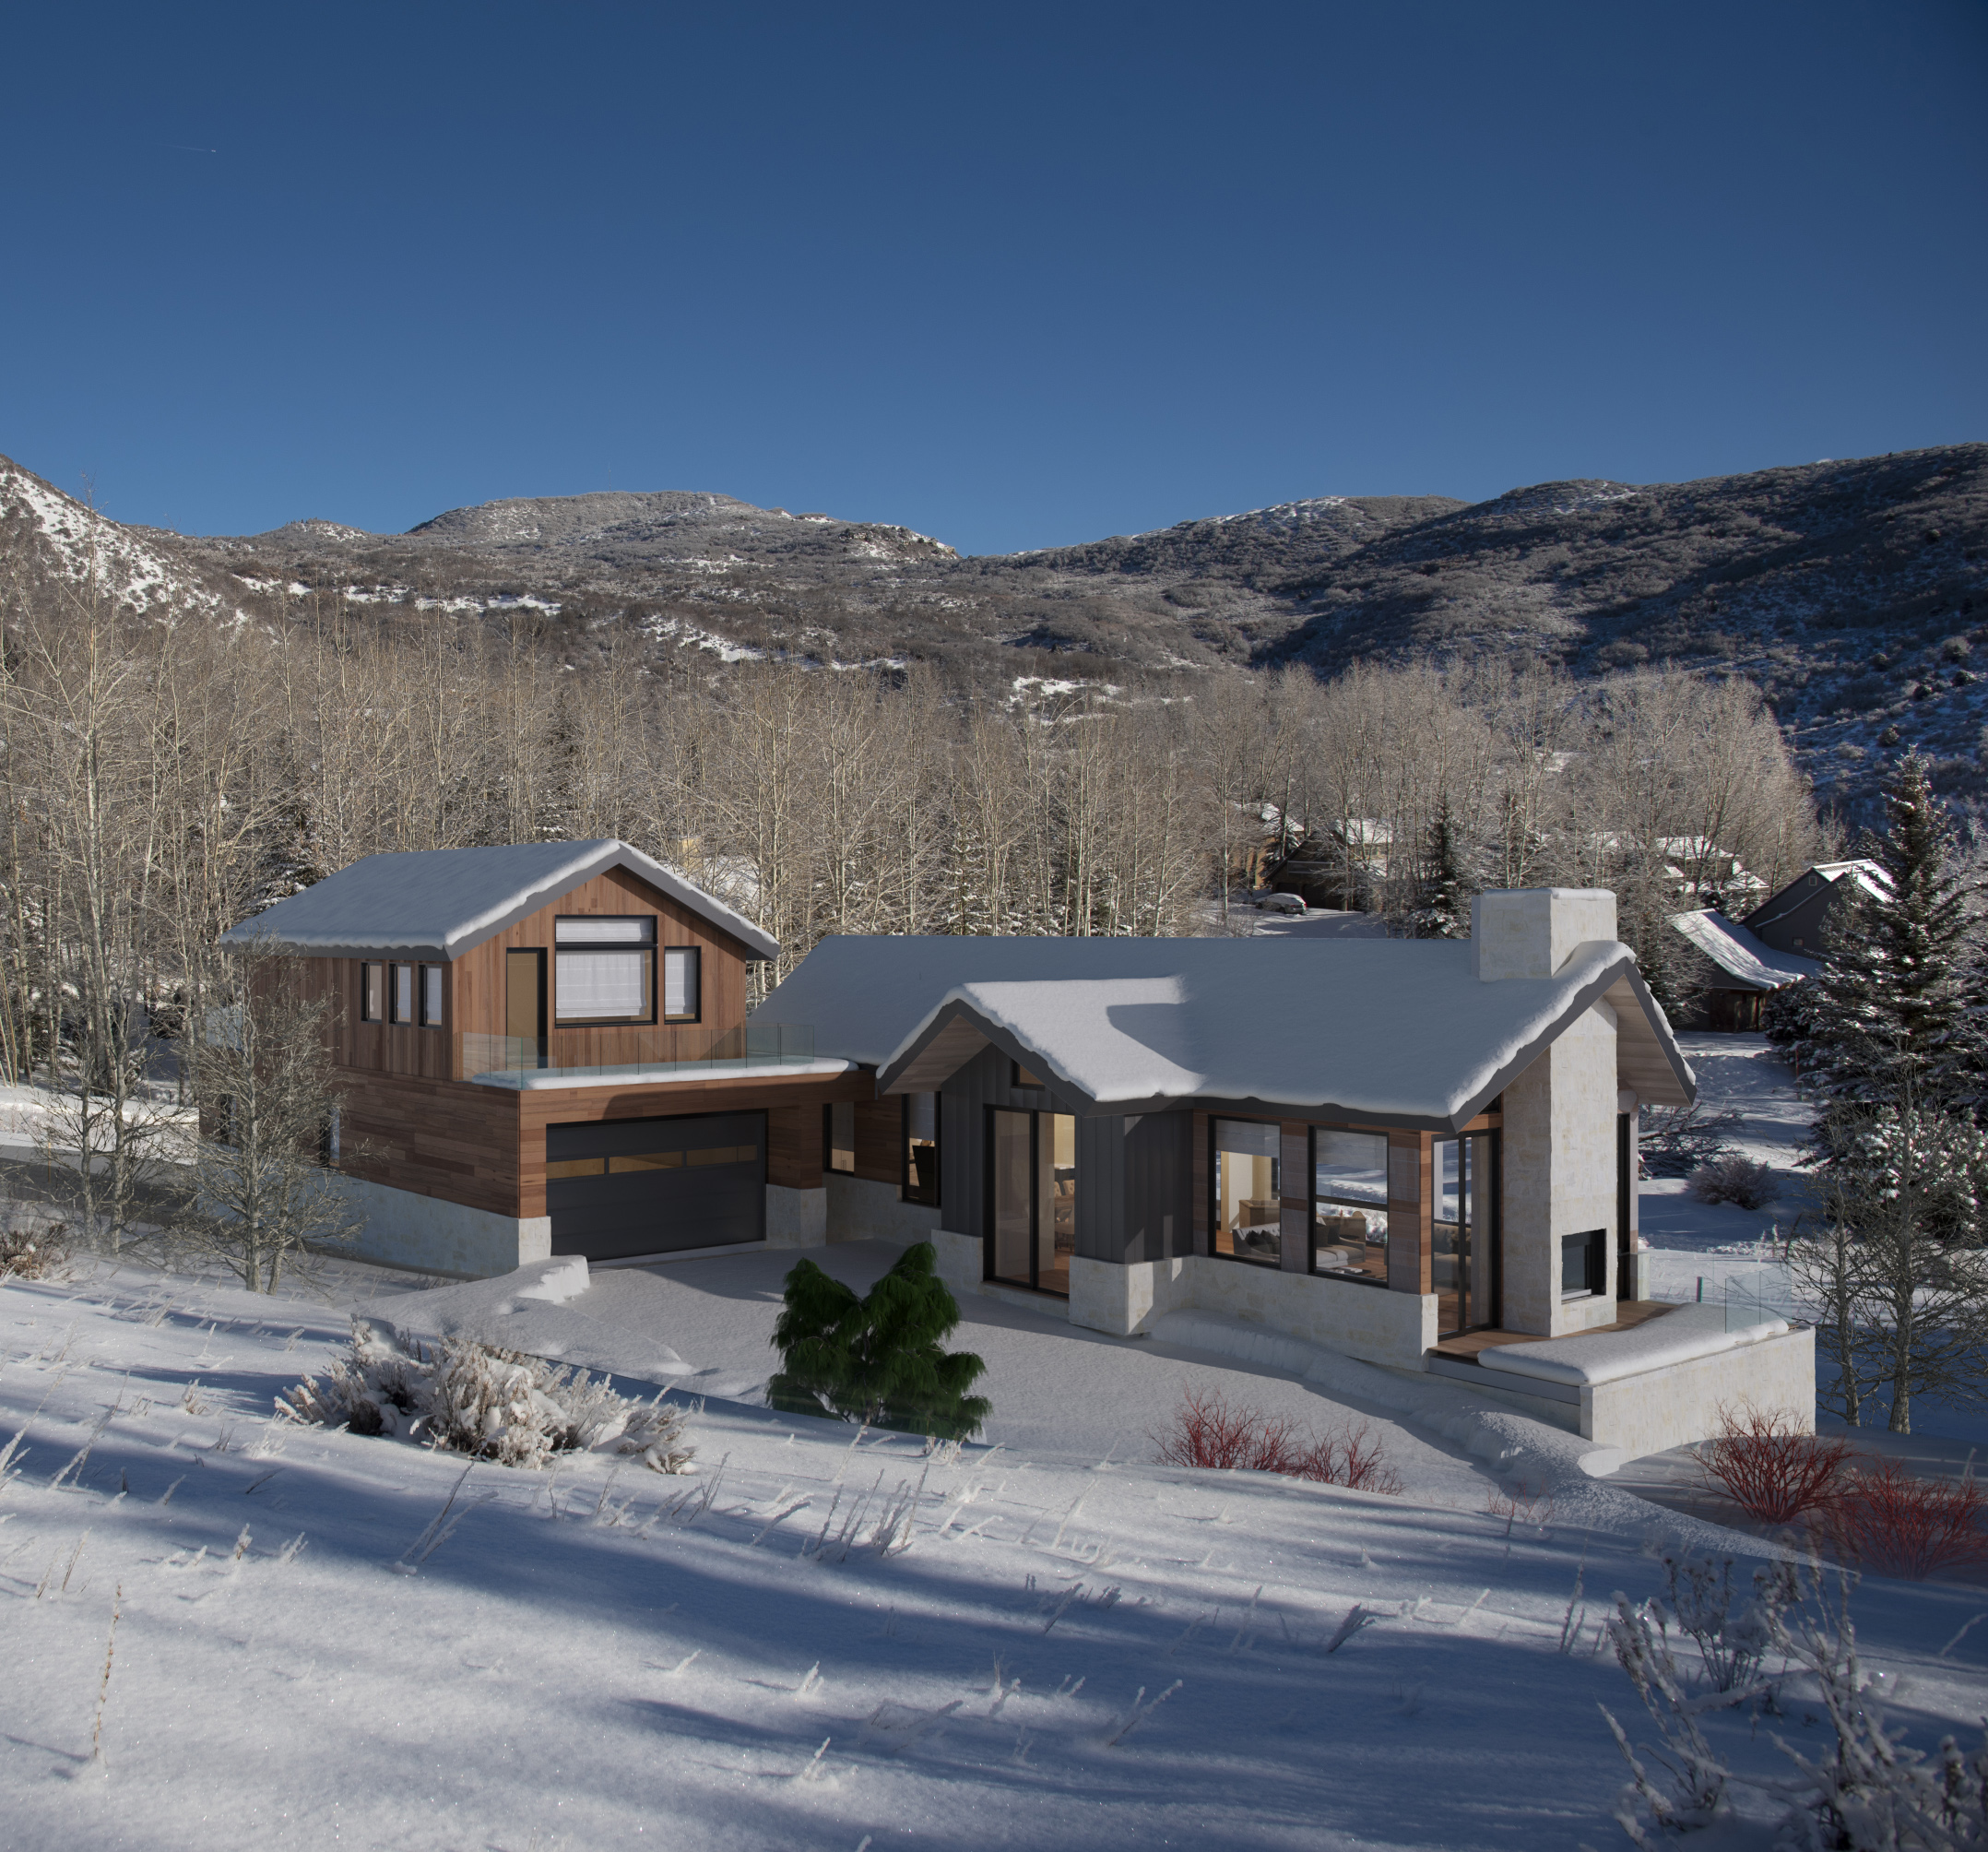 TBD Spur Ridge Road Snowmass Village Photo